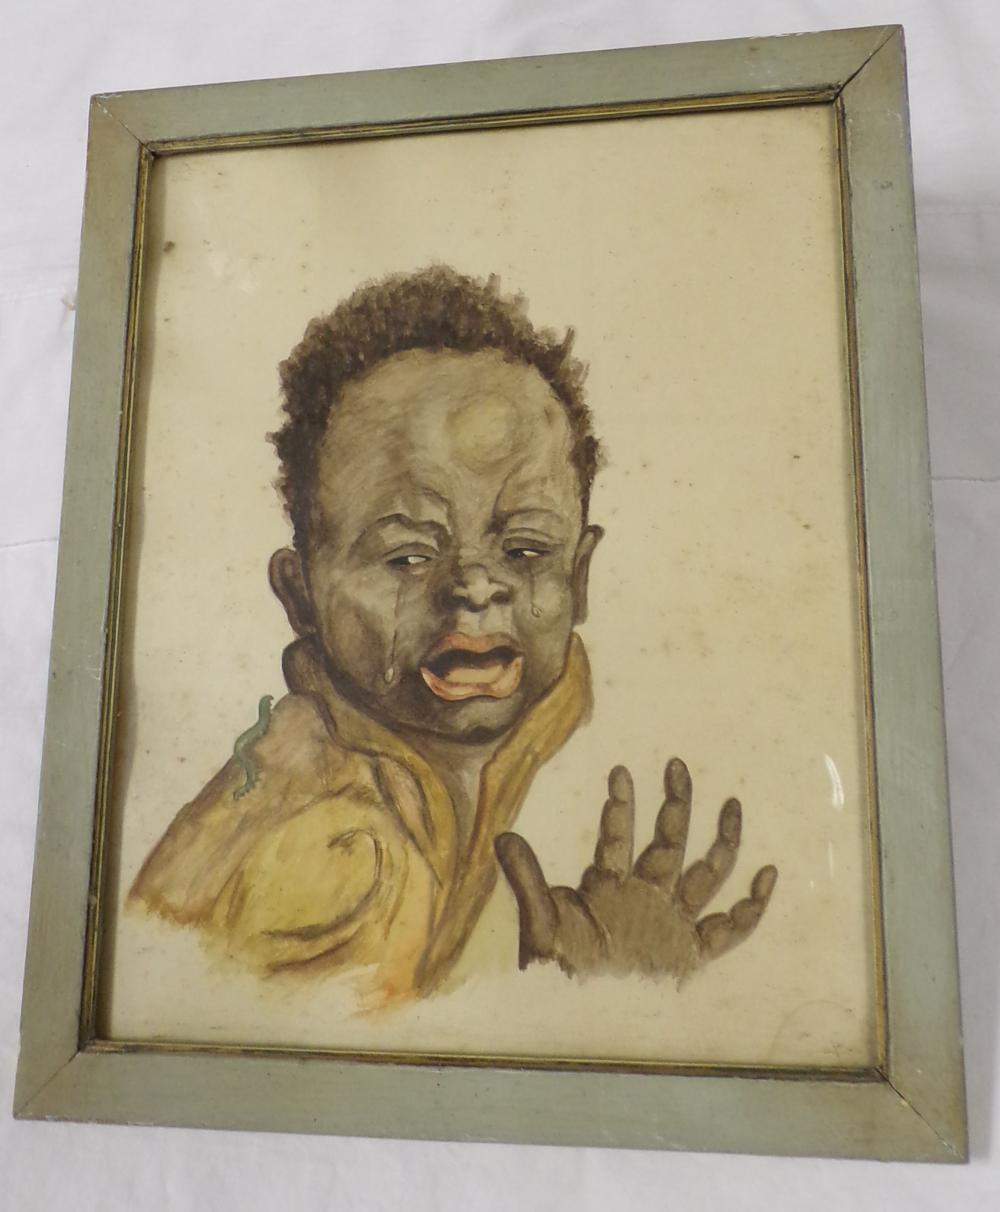 Framed watercolor portrait of an African American child crying, background shows some foxing & discoloration, unsigned